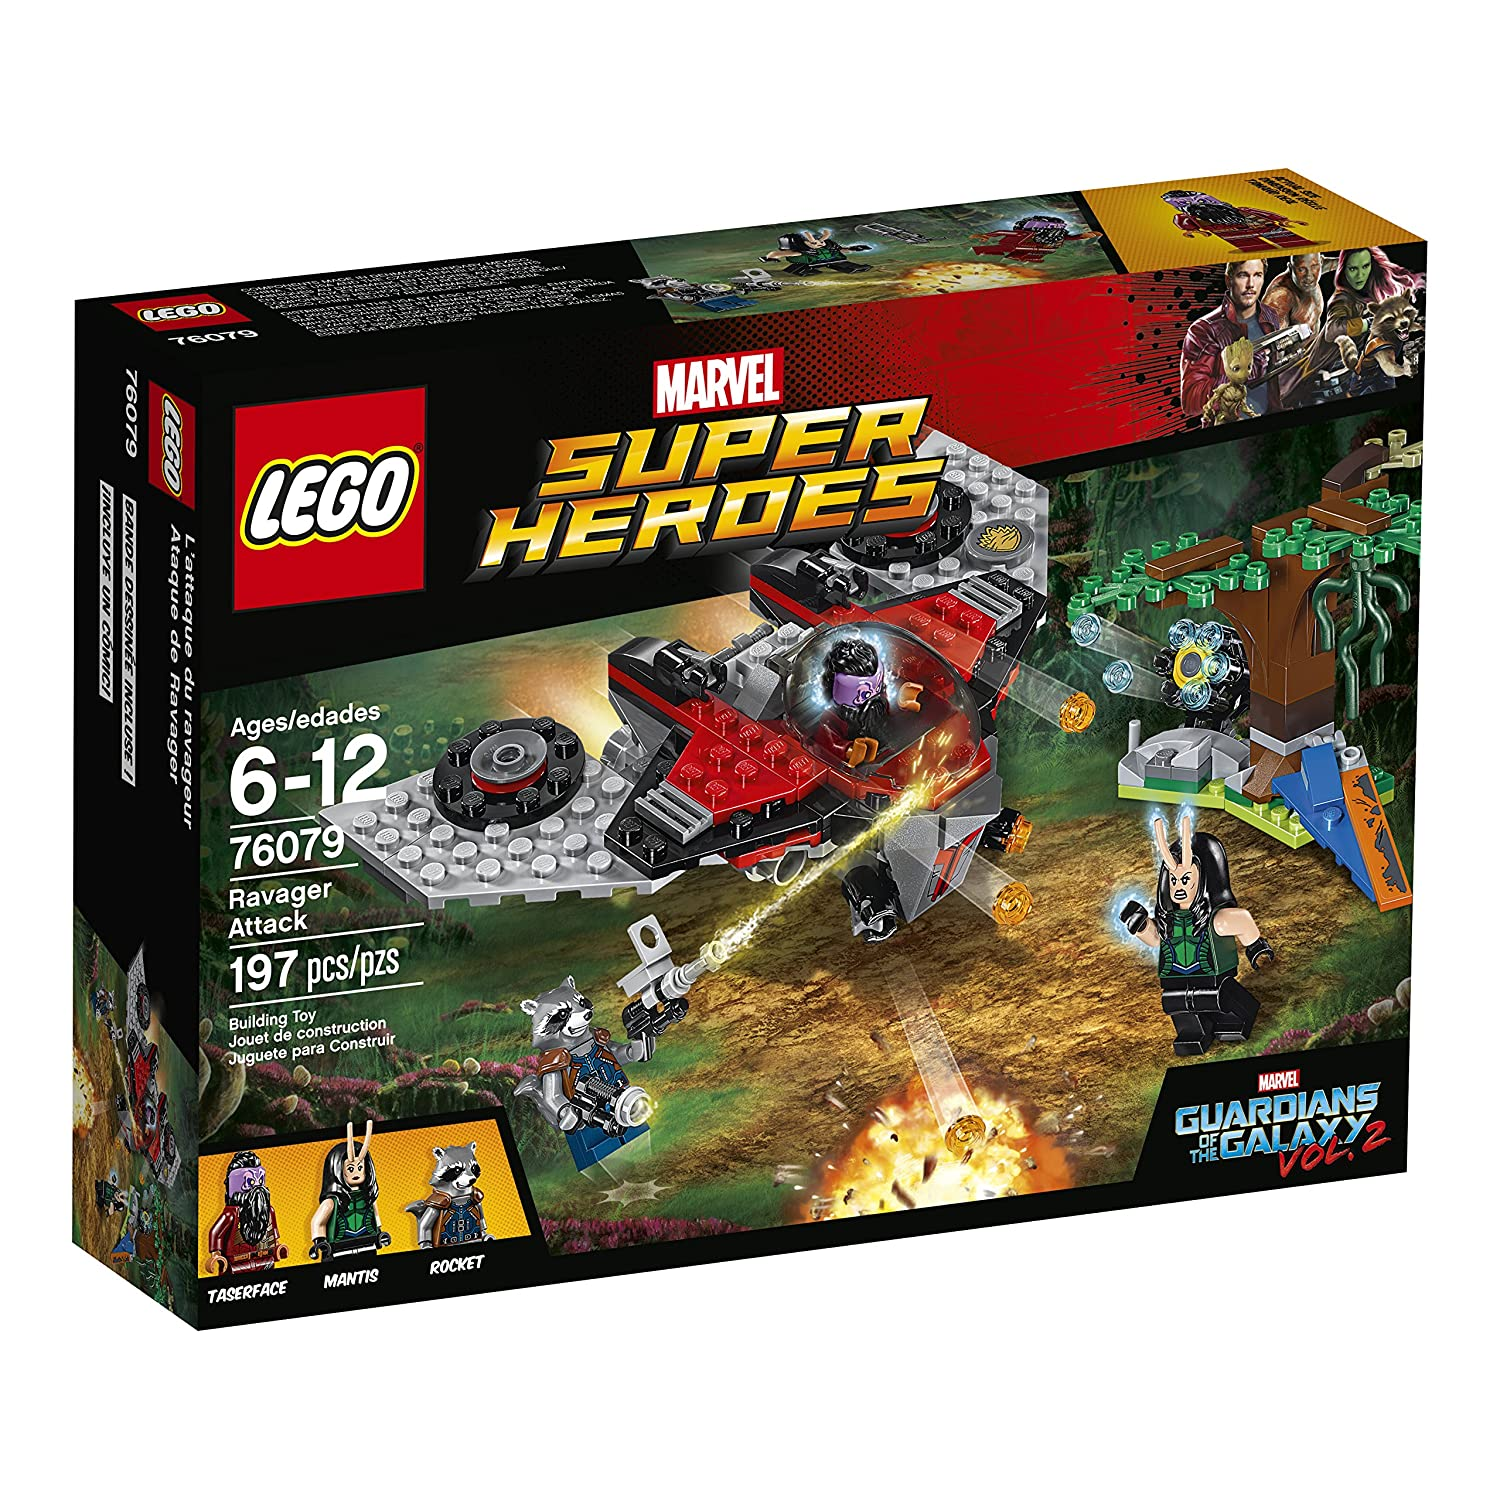 Top 7 Best LEGO Guardians of the Galaxy Sets Reviews in 2019 5